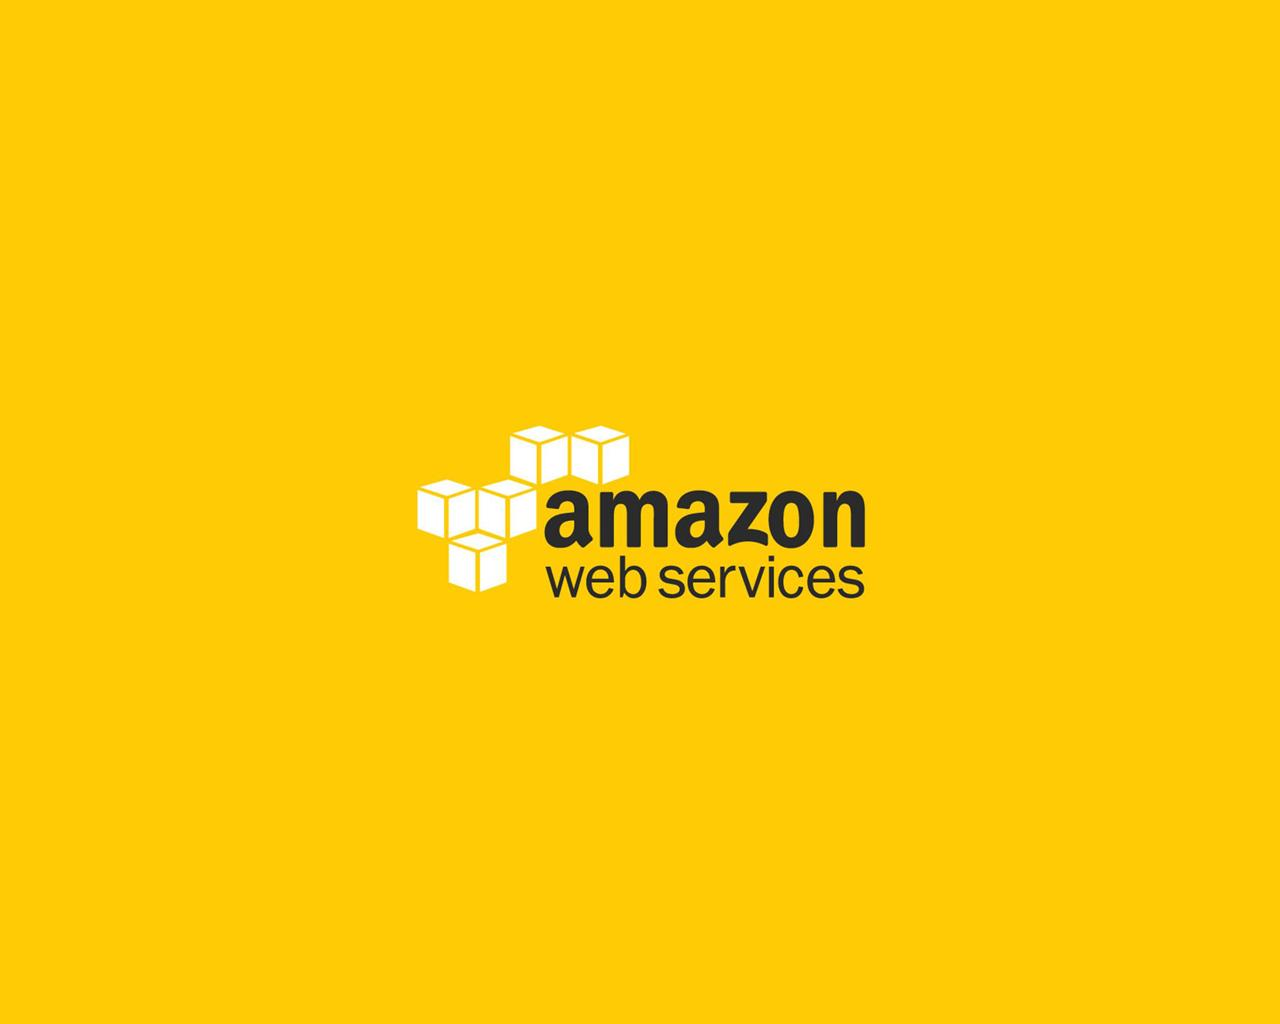 AWS Basic configuration and set-up by ki-themes - 110569